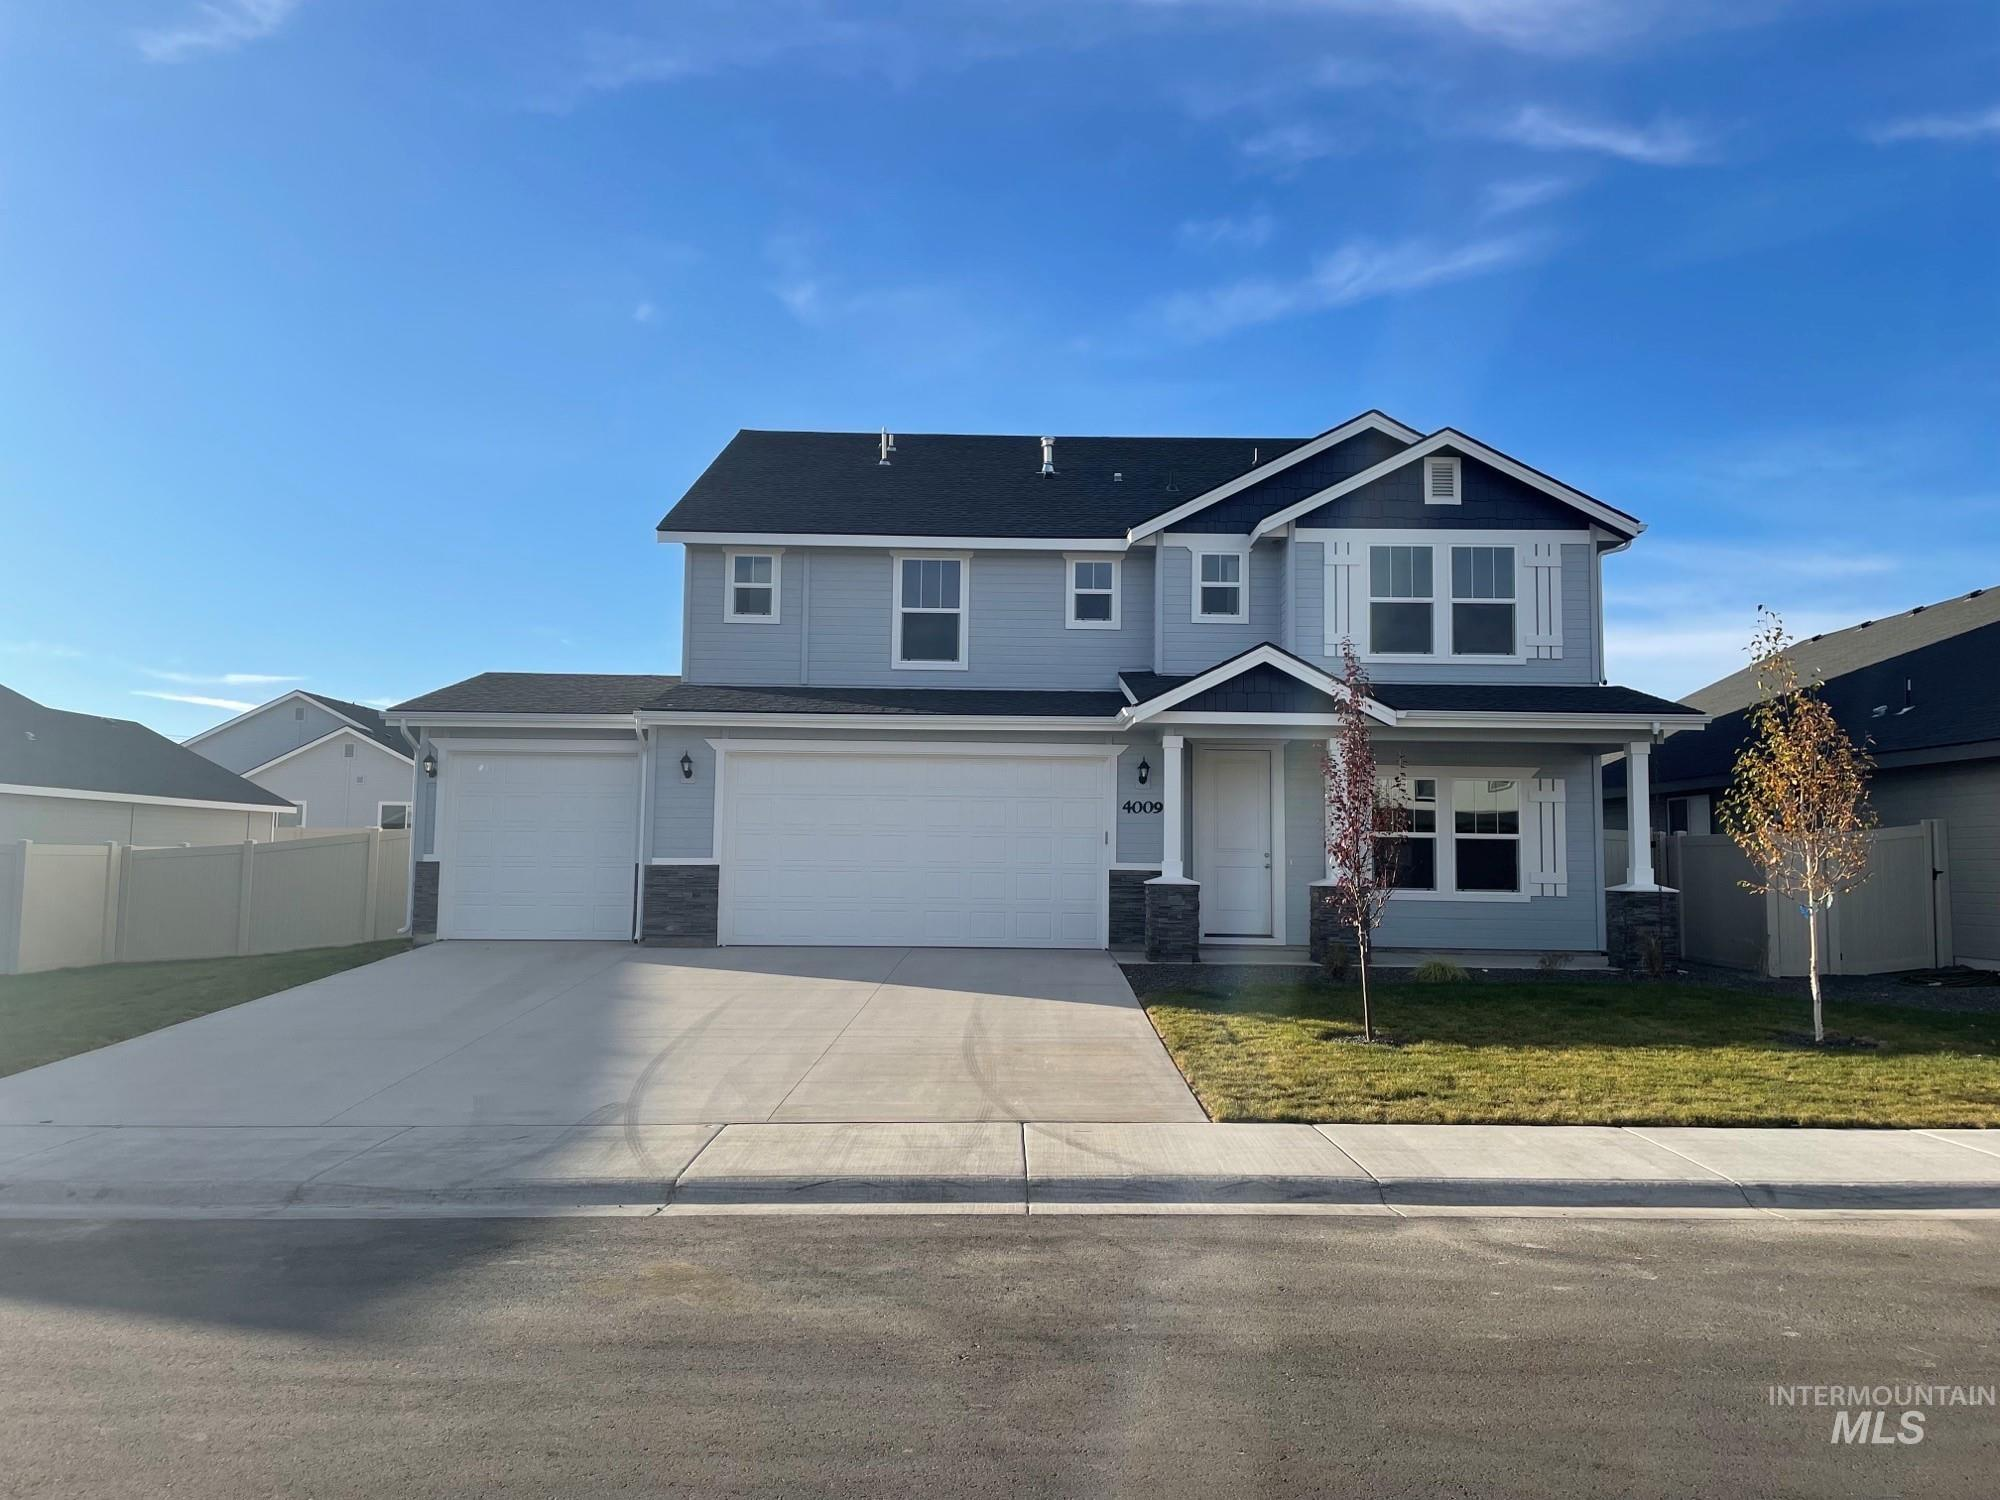 Presold Spruce with Craftsman Elevation. Photo similar. This home features, granite kitchen countertops, dual vanities, upgraded cabinets, 9' ceilings, covered patio, walk-in shower, fireplace, full sprinklers, stainless steel appliances with gas range, and much more!